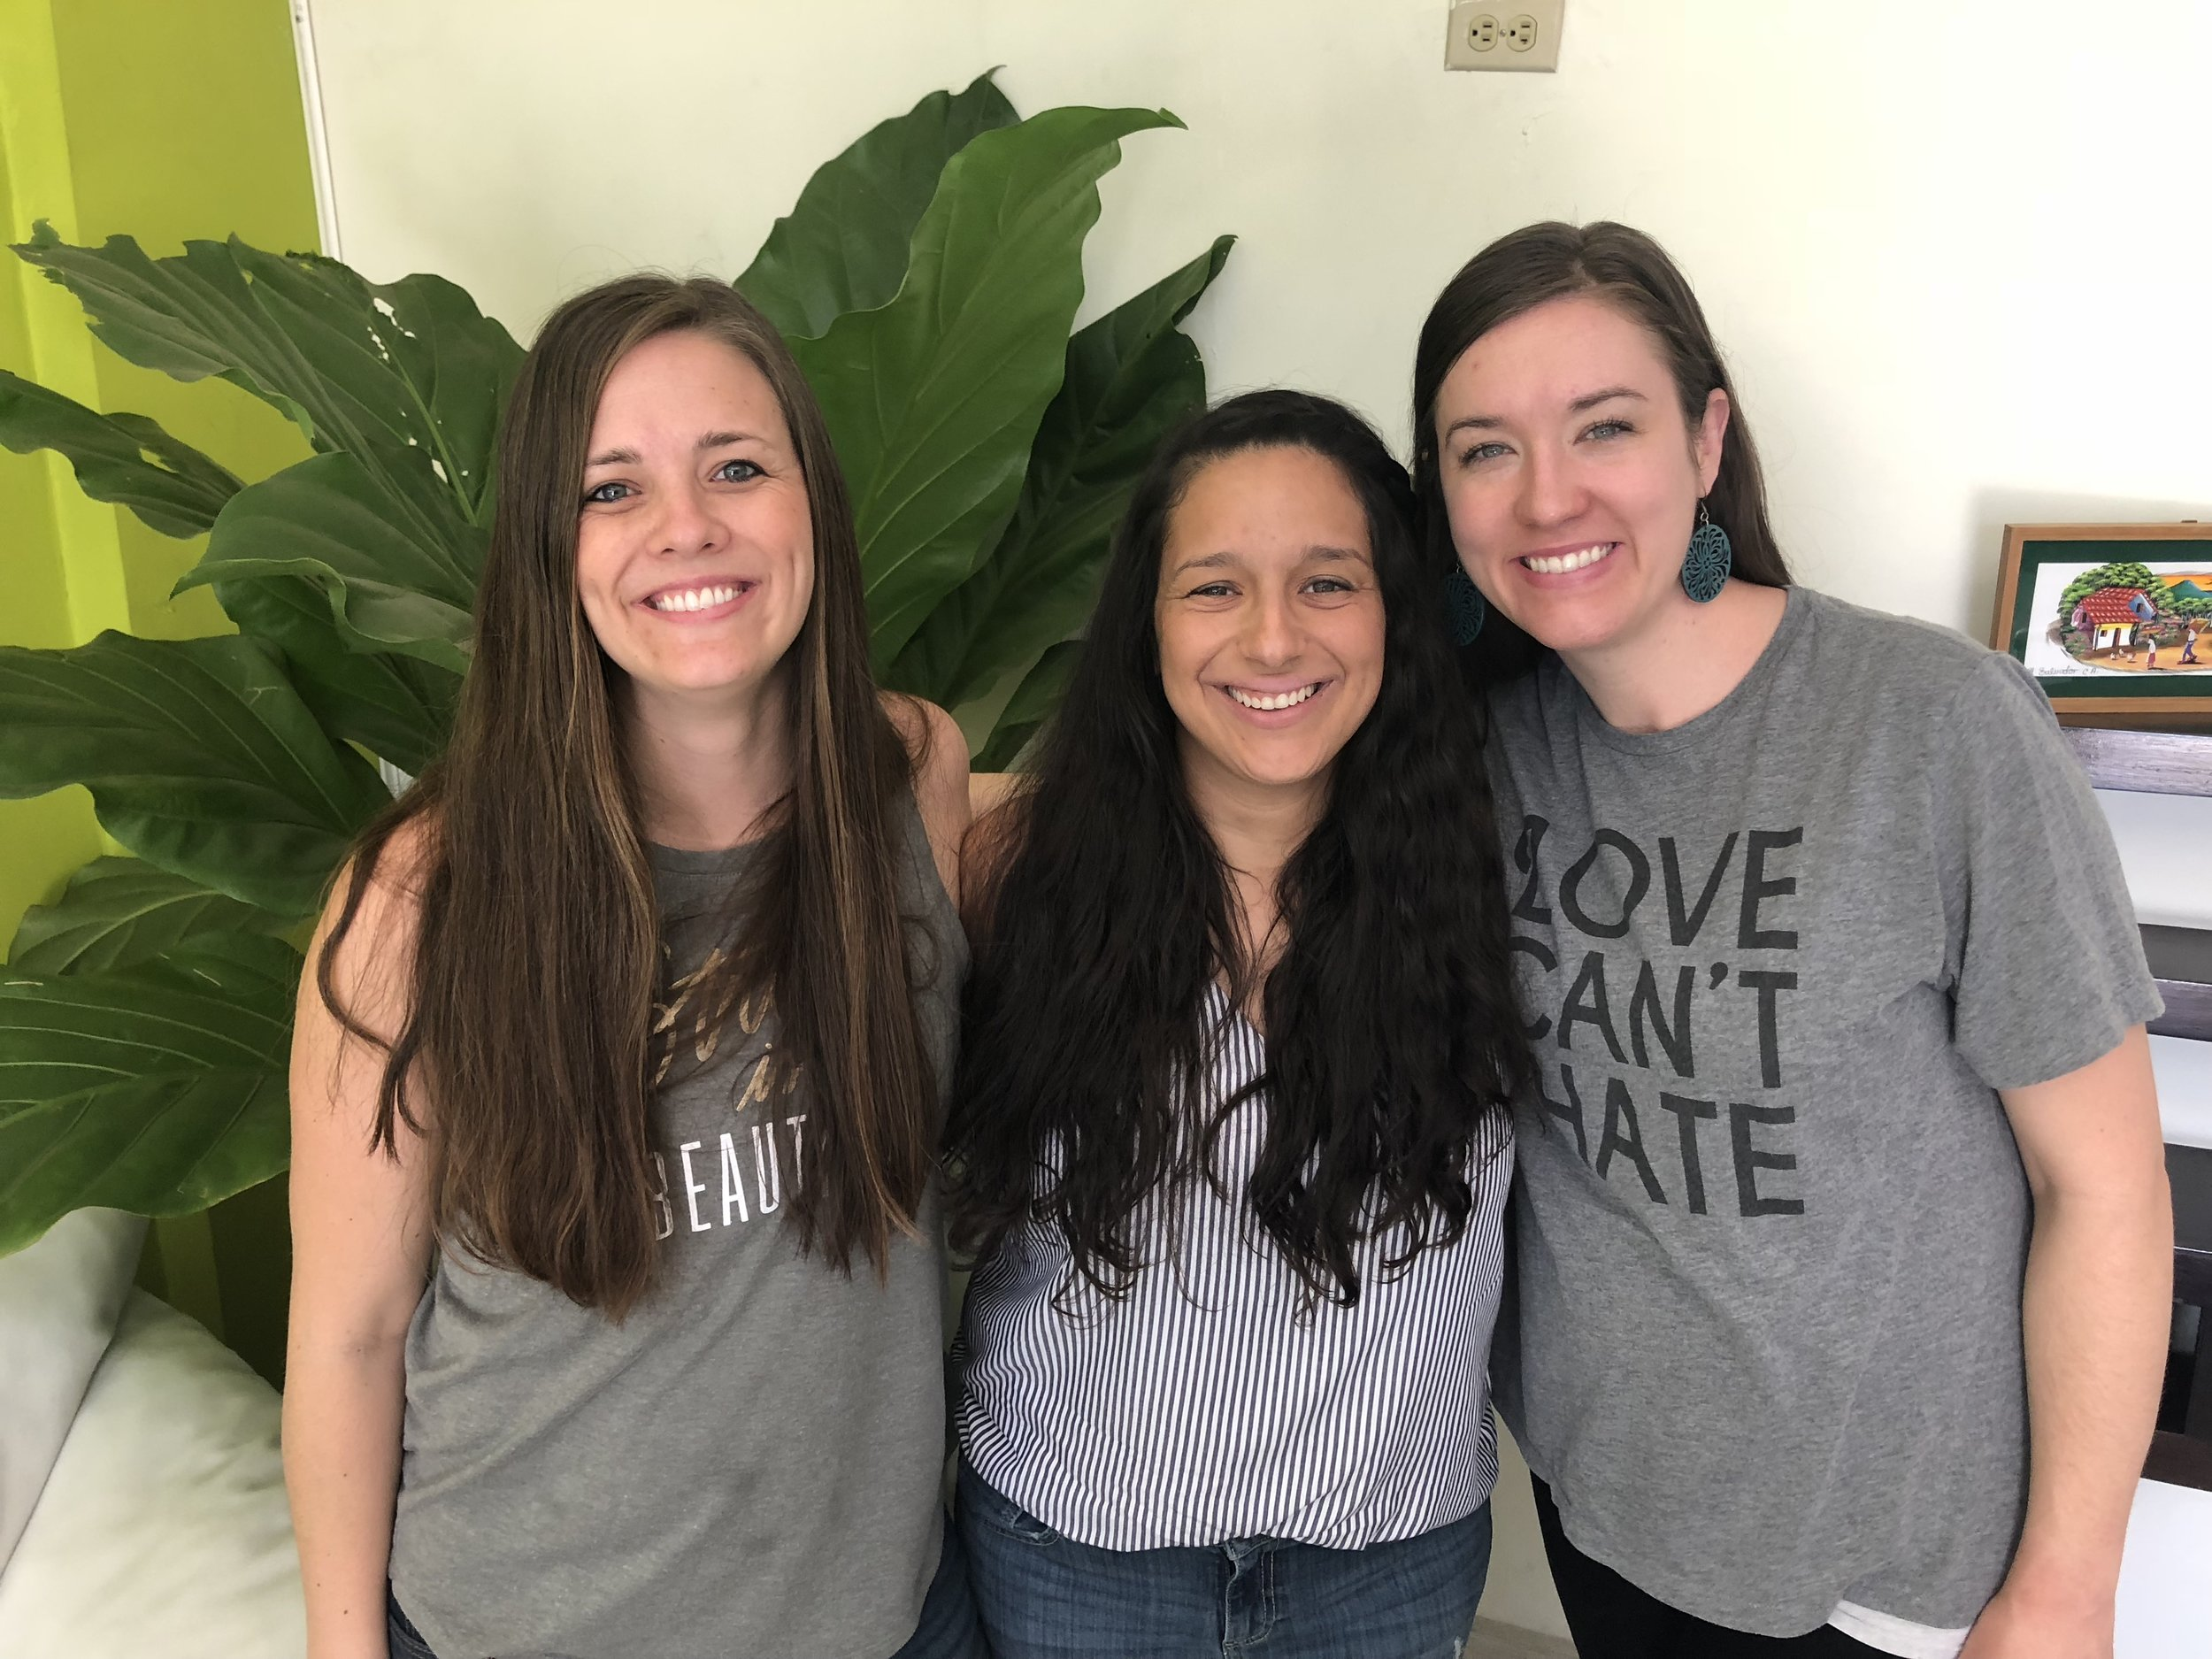 Team members Amanda Davis, Ninfa Parker, and Anna Reyes have been serving in Latin America together for over a decade. This kind of friendship makes for a healthy team dynamic and demonstrates to others that they know the Lord, because of their love for one another.